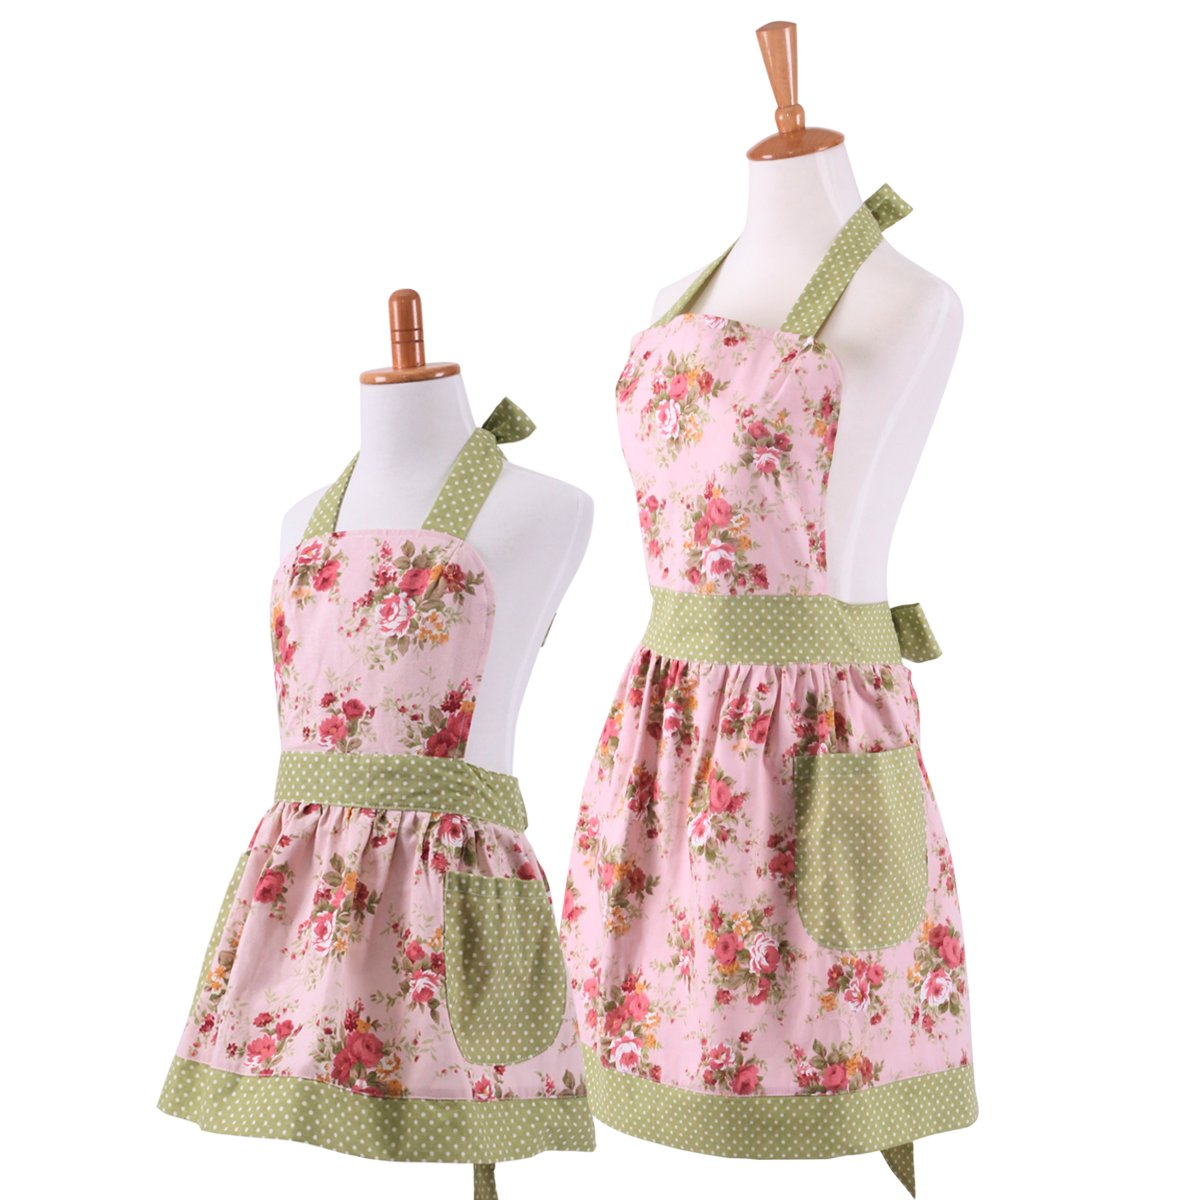 Old Fashioned Aprons & Patterns Neoviva Cotton Canvas Kitchen Apron for Women and Kid Girl Floral Pink  AT vintagedancer.com